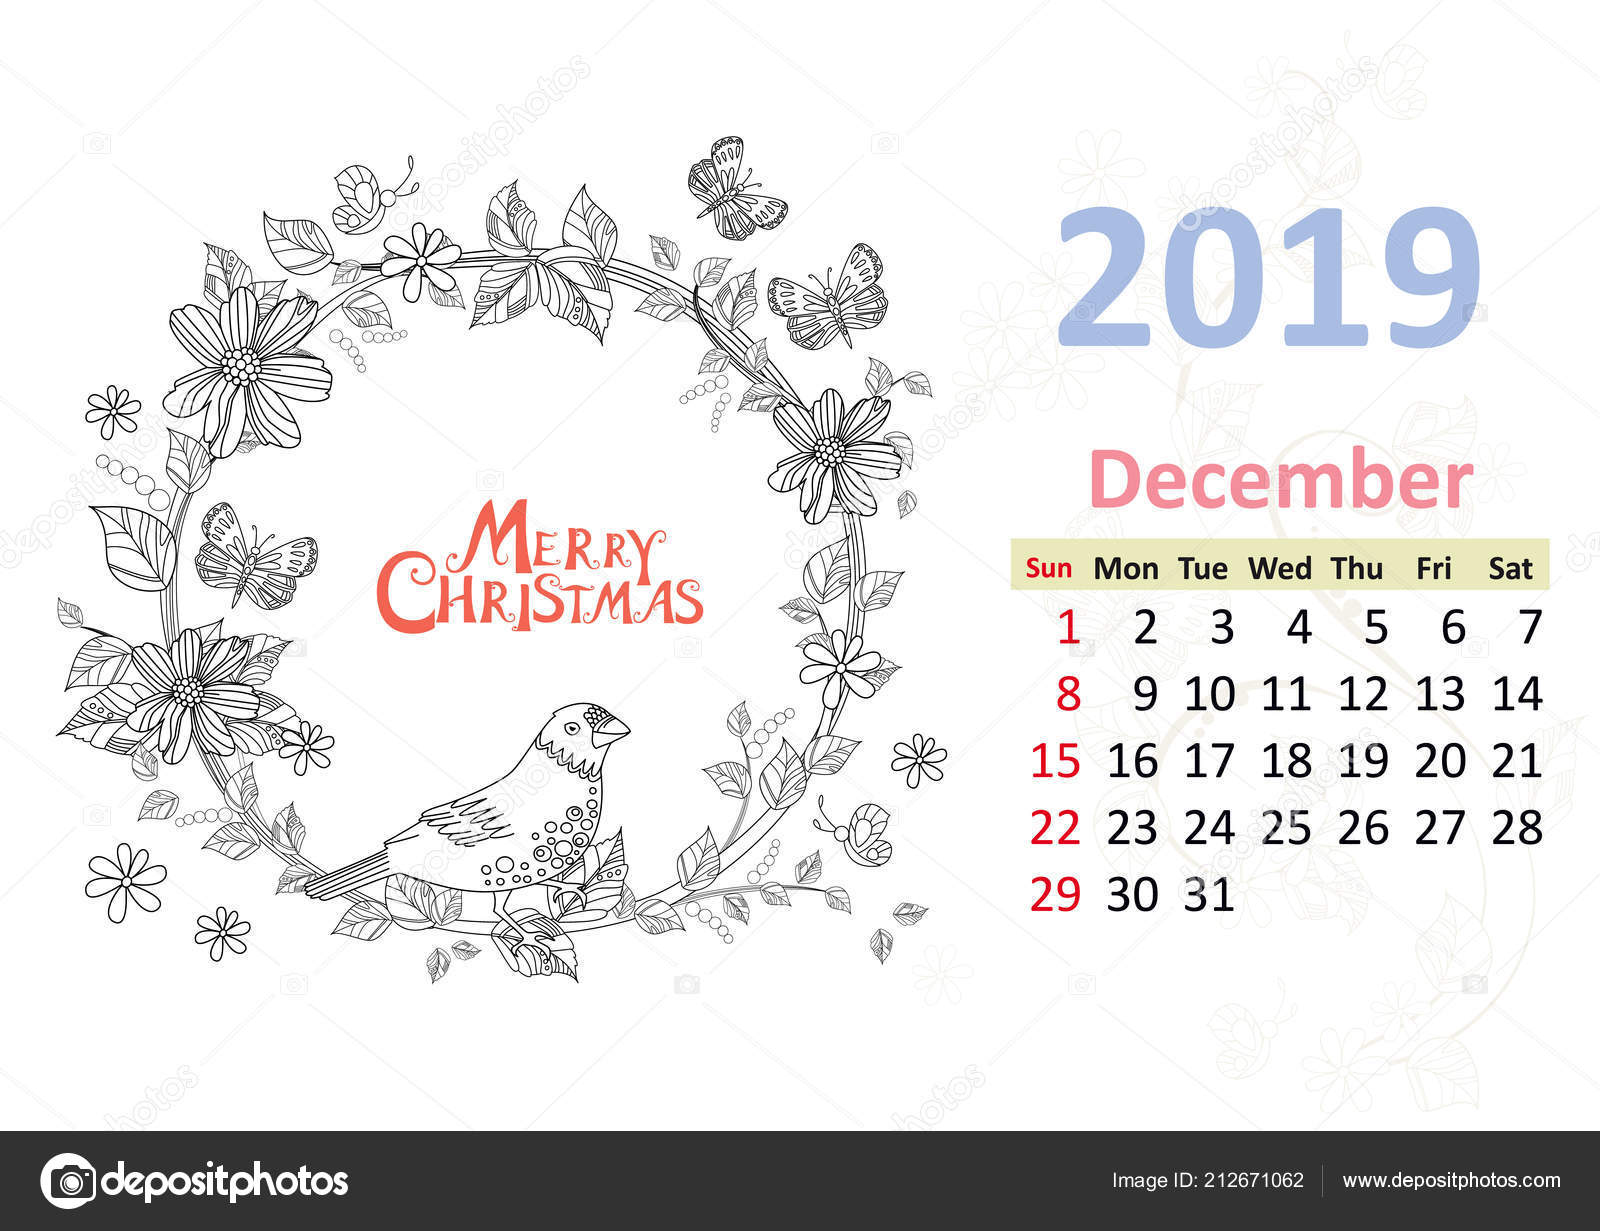 Coloring Calendar Page December 2019 Bird Sitting Floral Circle